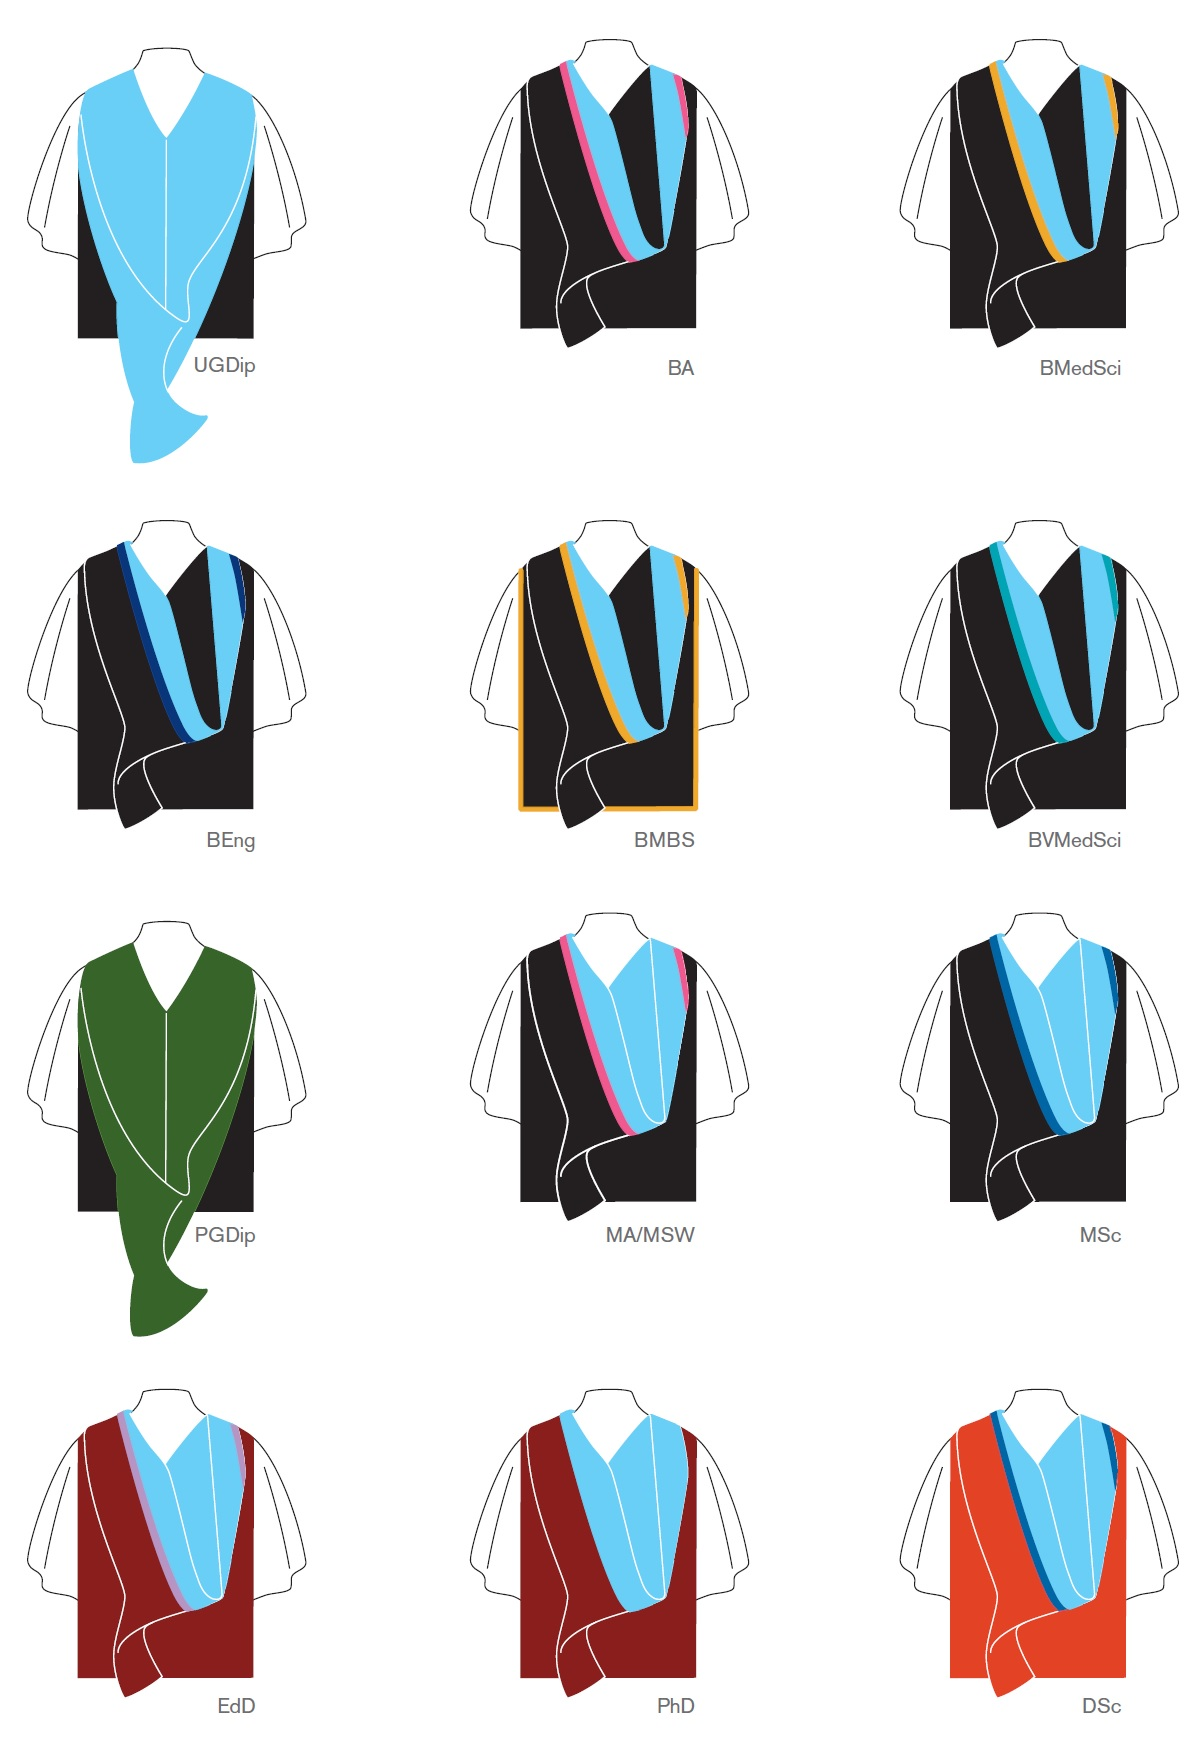 Graduation hood colours by degree